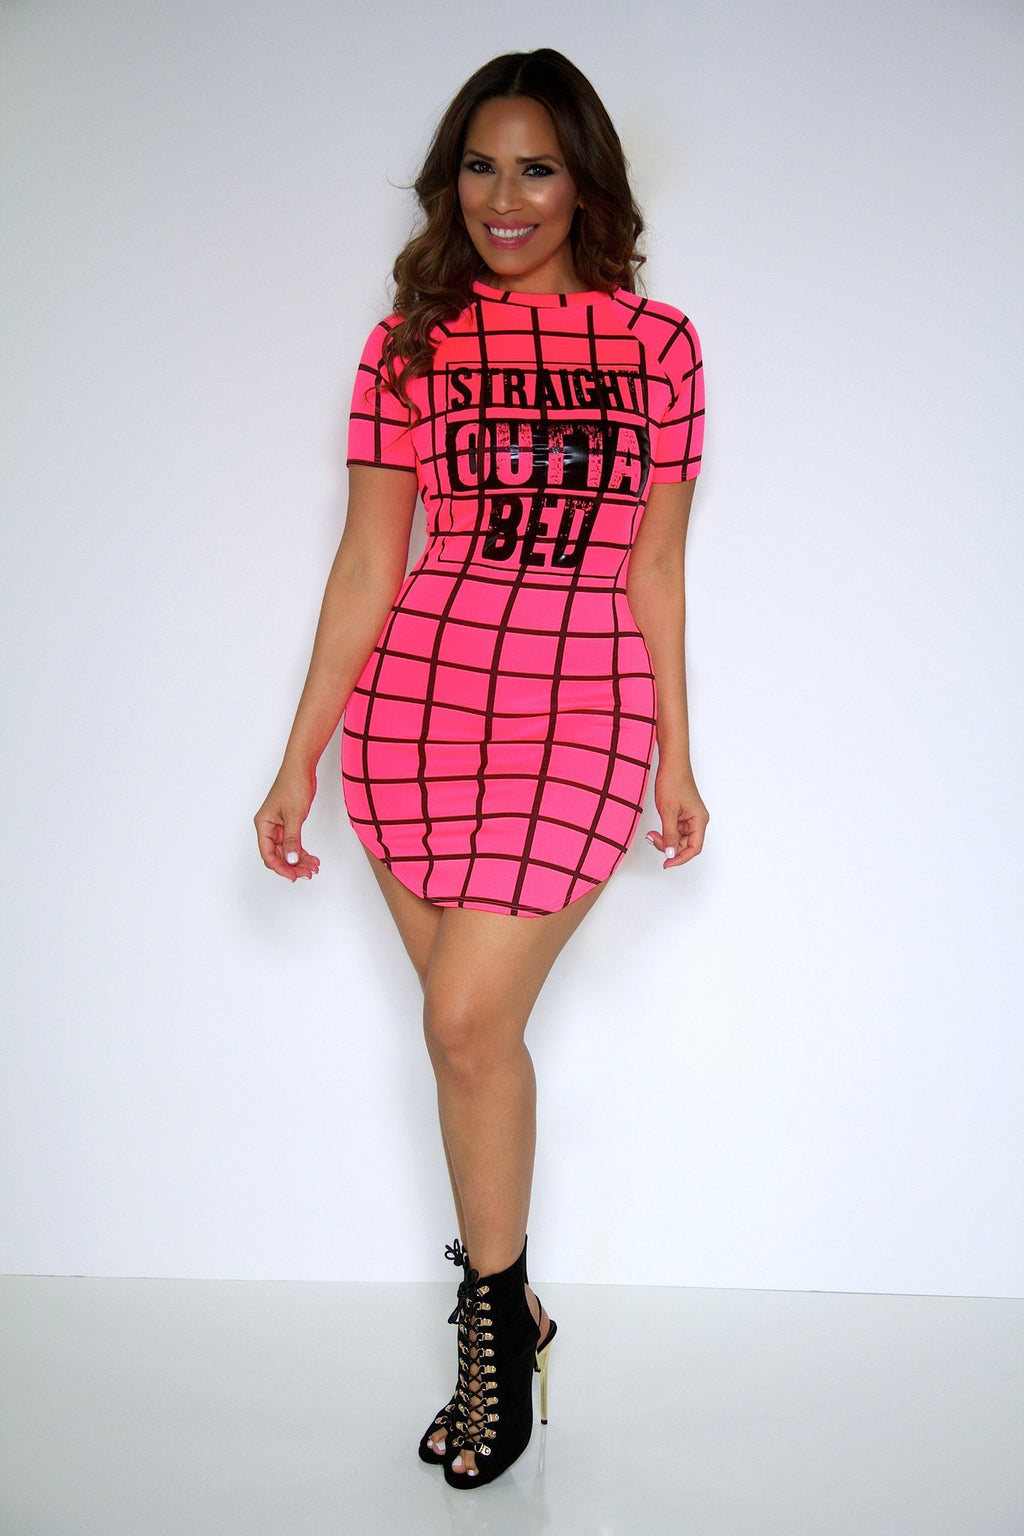 'Straight Outta Bed' Mini Dress in Neon Coral - MY SEXY STYLES